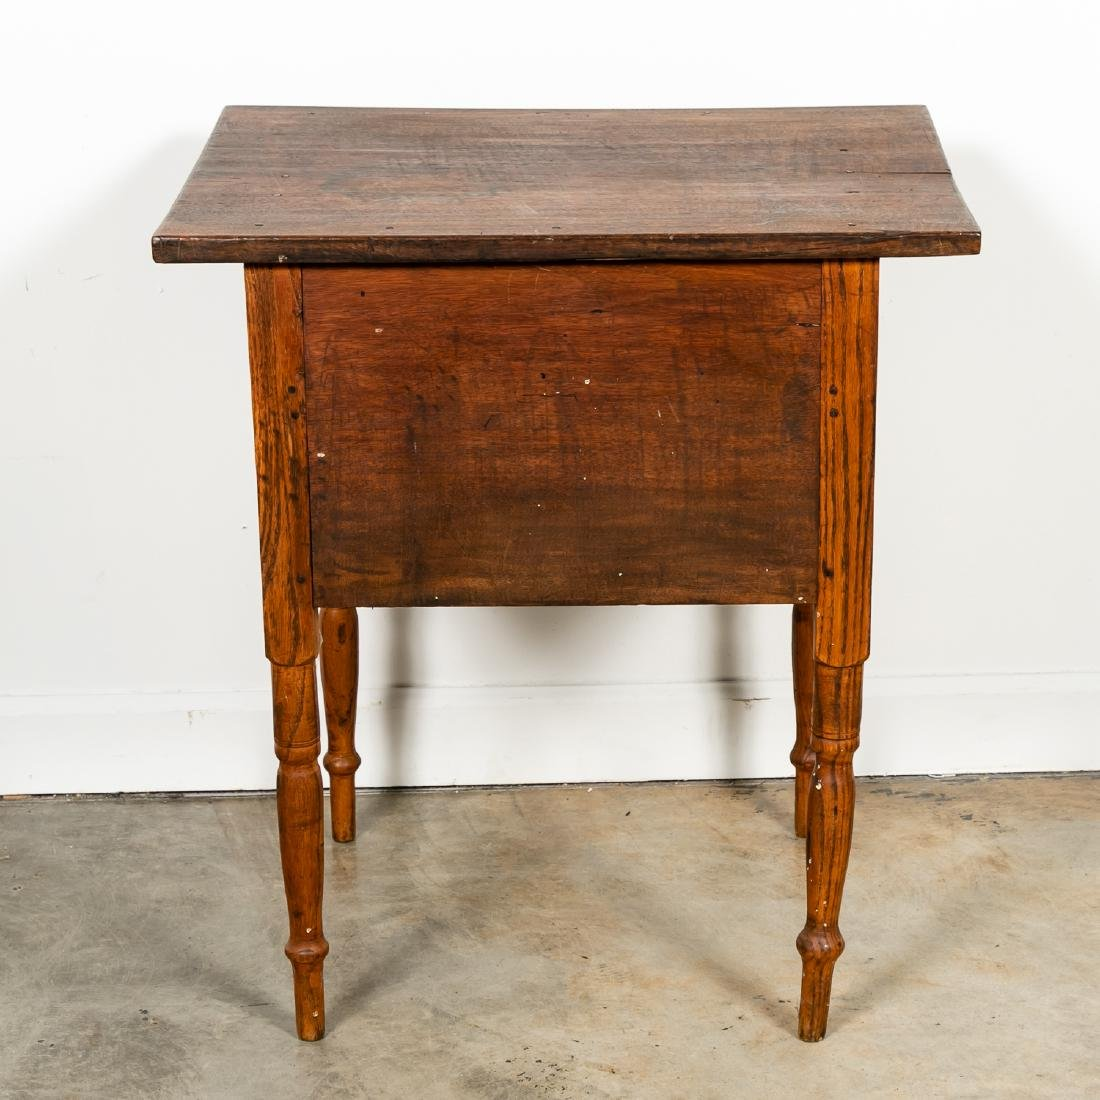 Early American Country Oak SideTable - 2